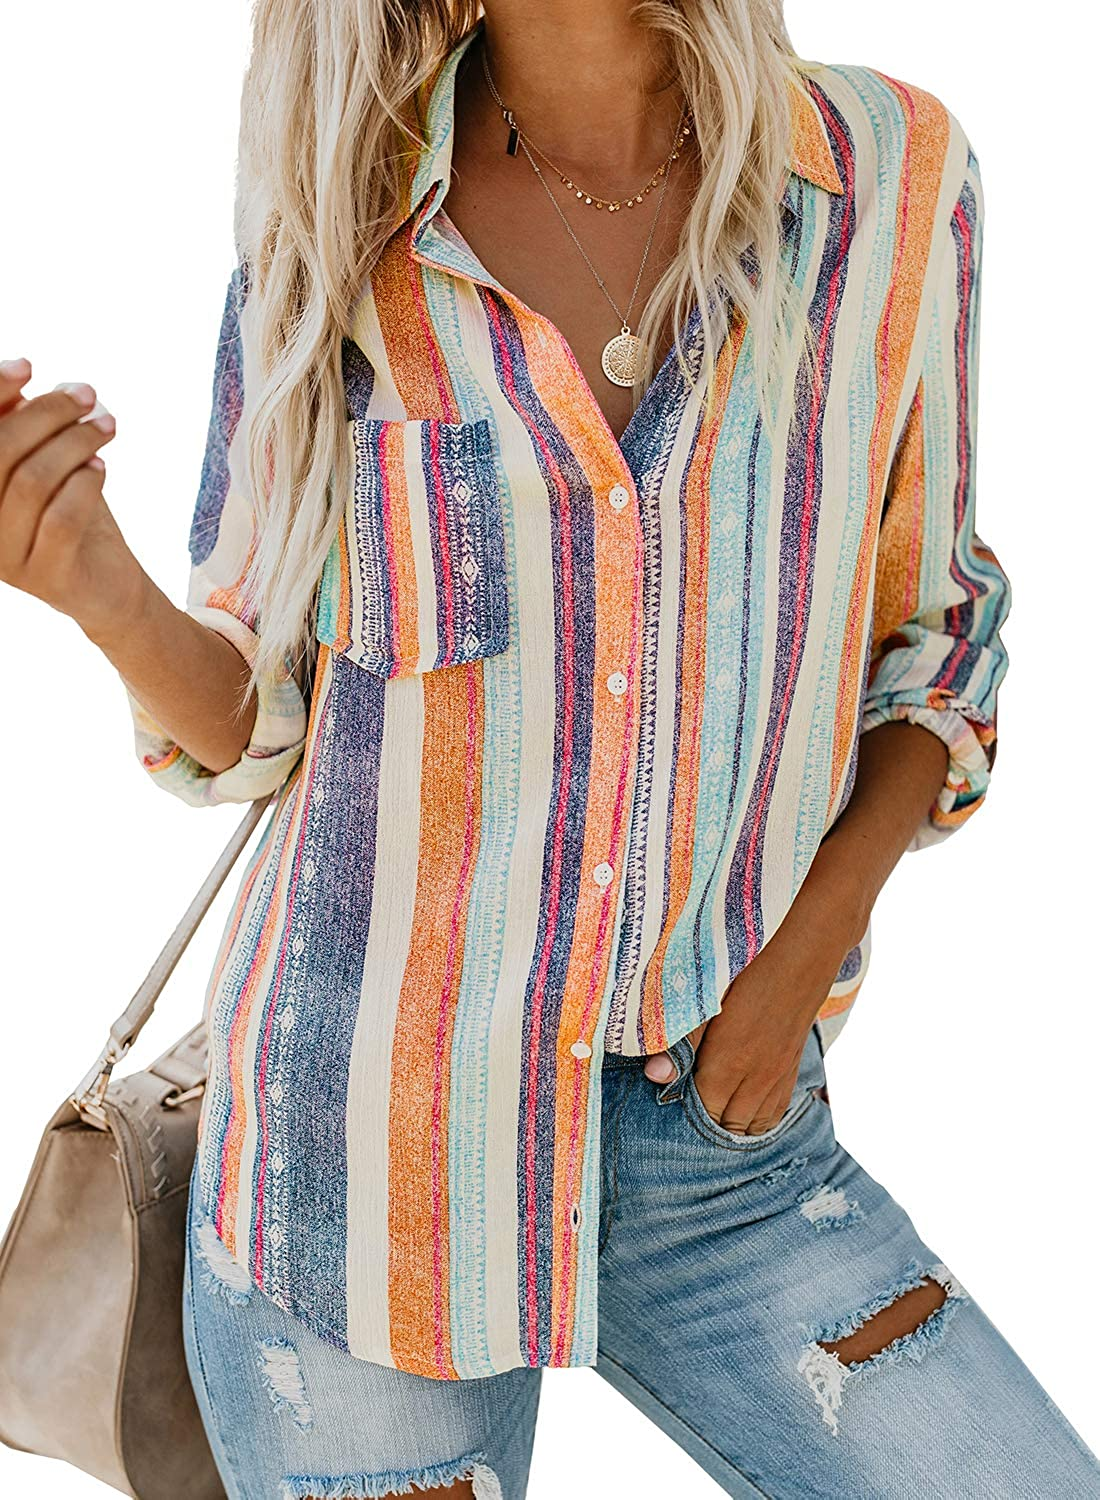 Biucly Women's Casual Stylish Striped V Neck Button Down Roll up Sleeve Blouses Shirts Tops S-2XL